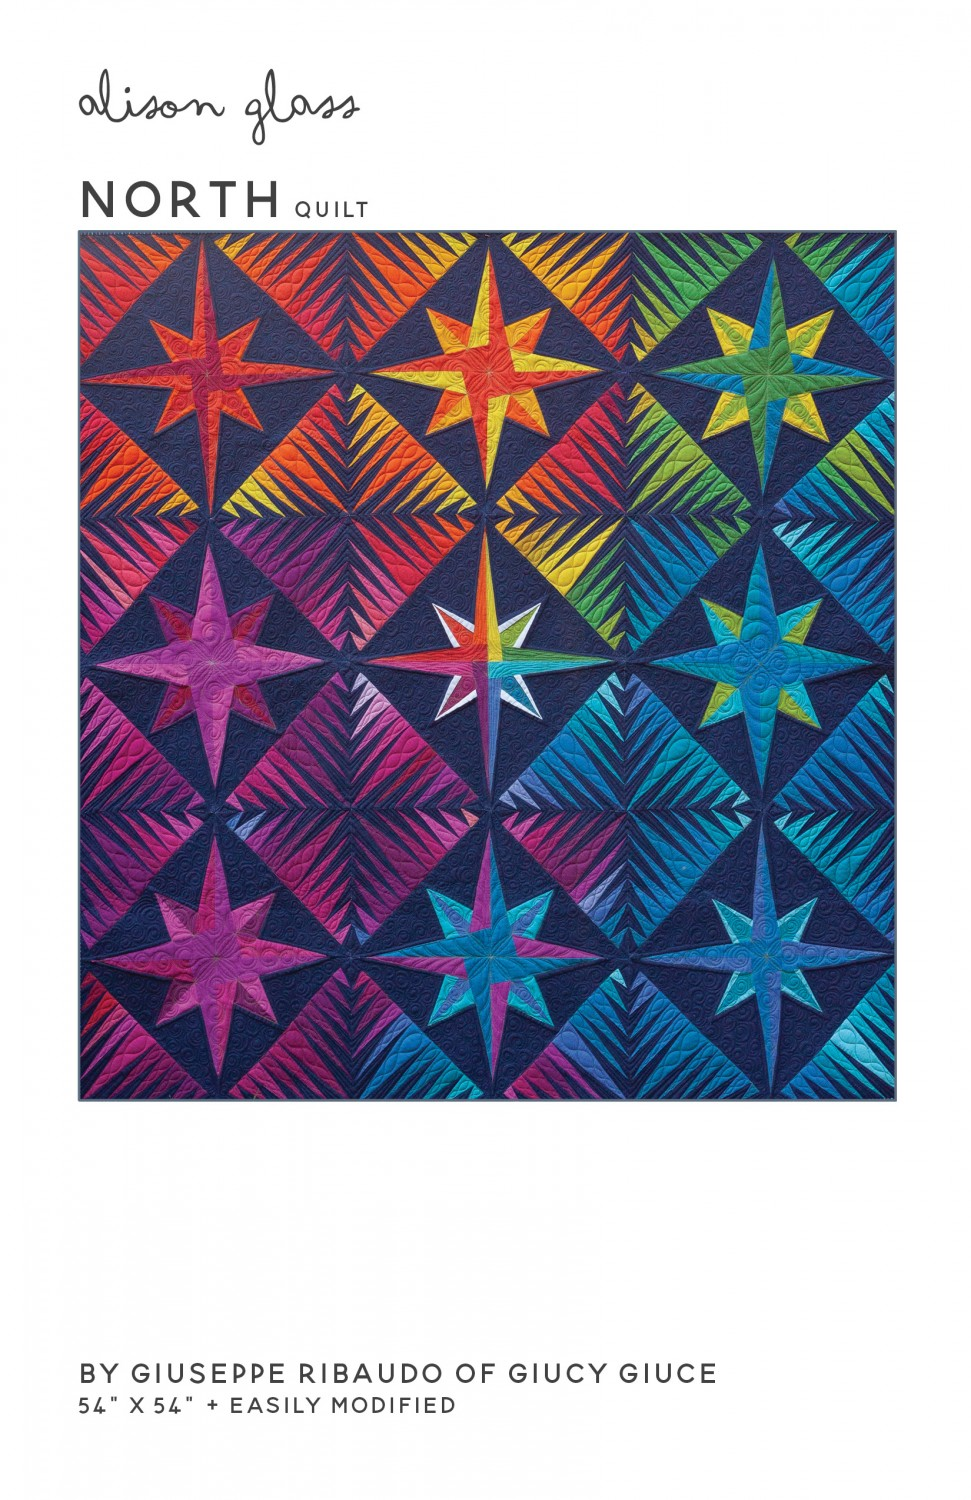 patroon North quilt